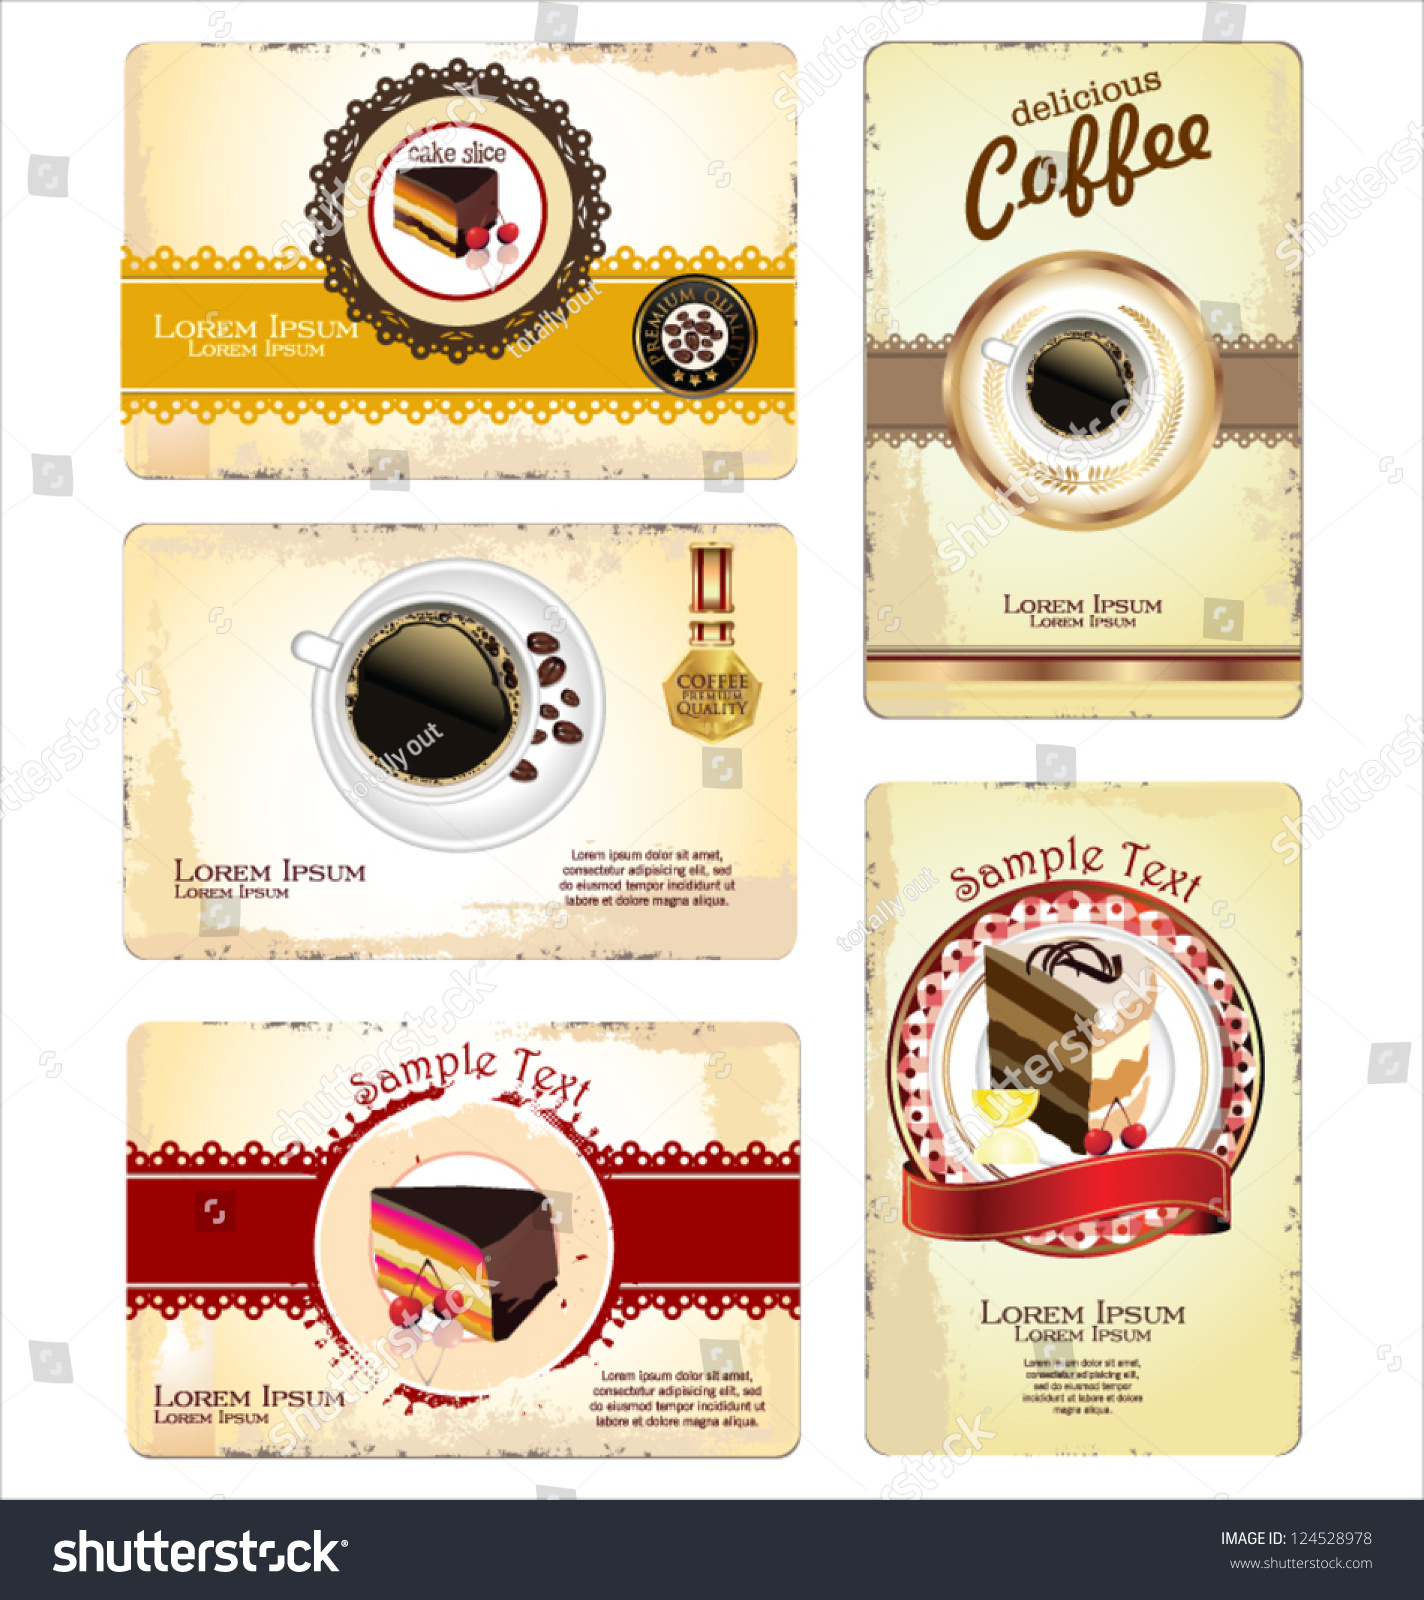 Coffeetea Cakes Menu Business Card Template Stock Vector